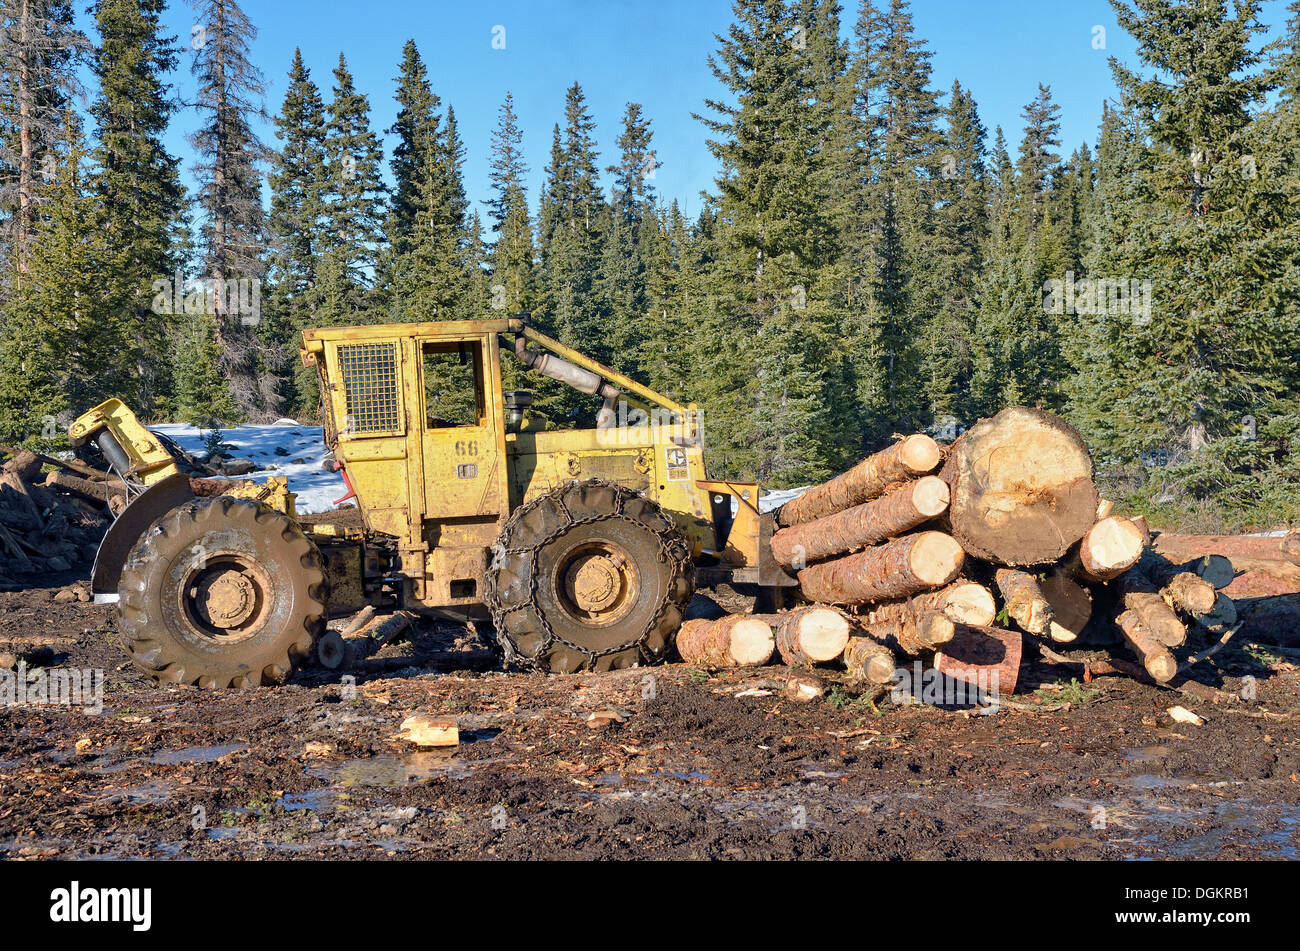 Stack of logs with heavy equipment, bulldozer, Highway 65, Grand Mesa National Forest, Colorado, USA - Stock Image